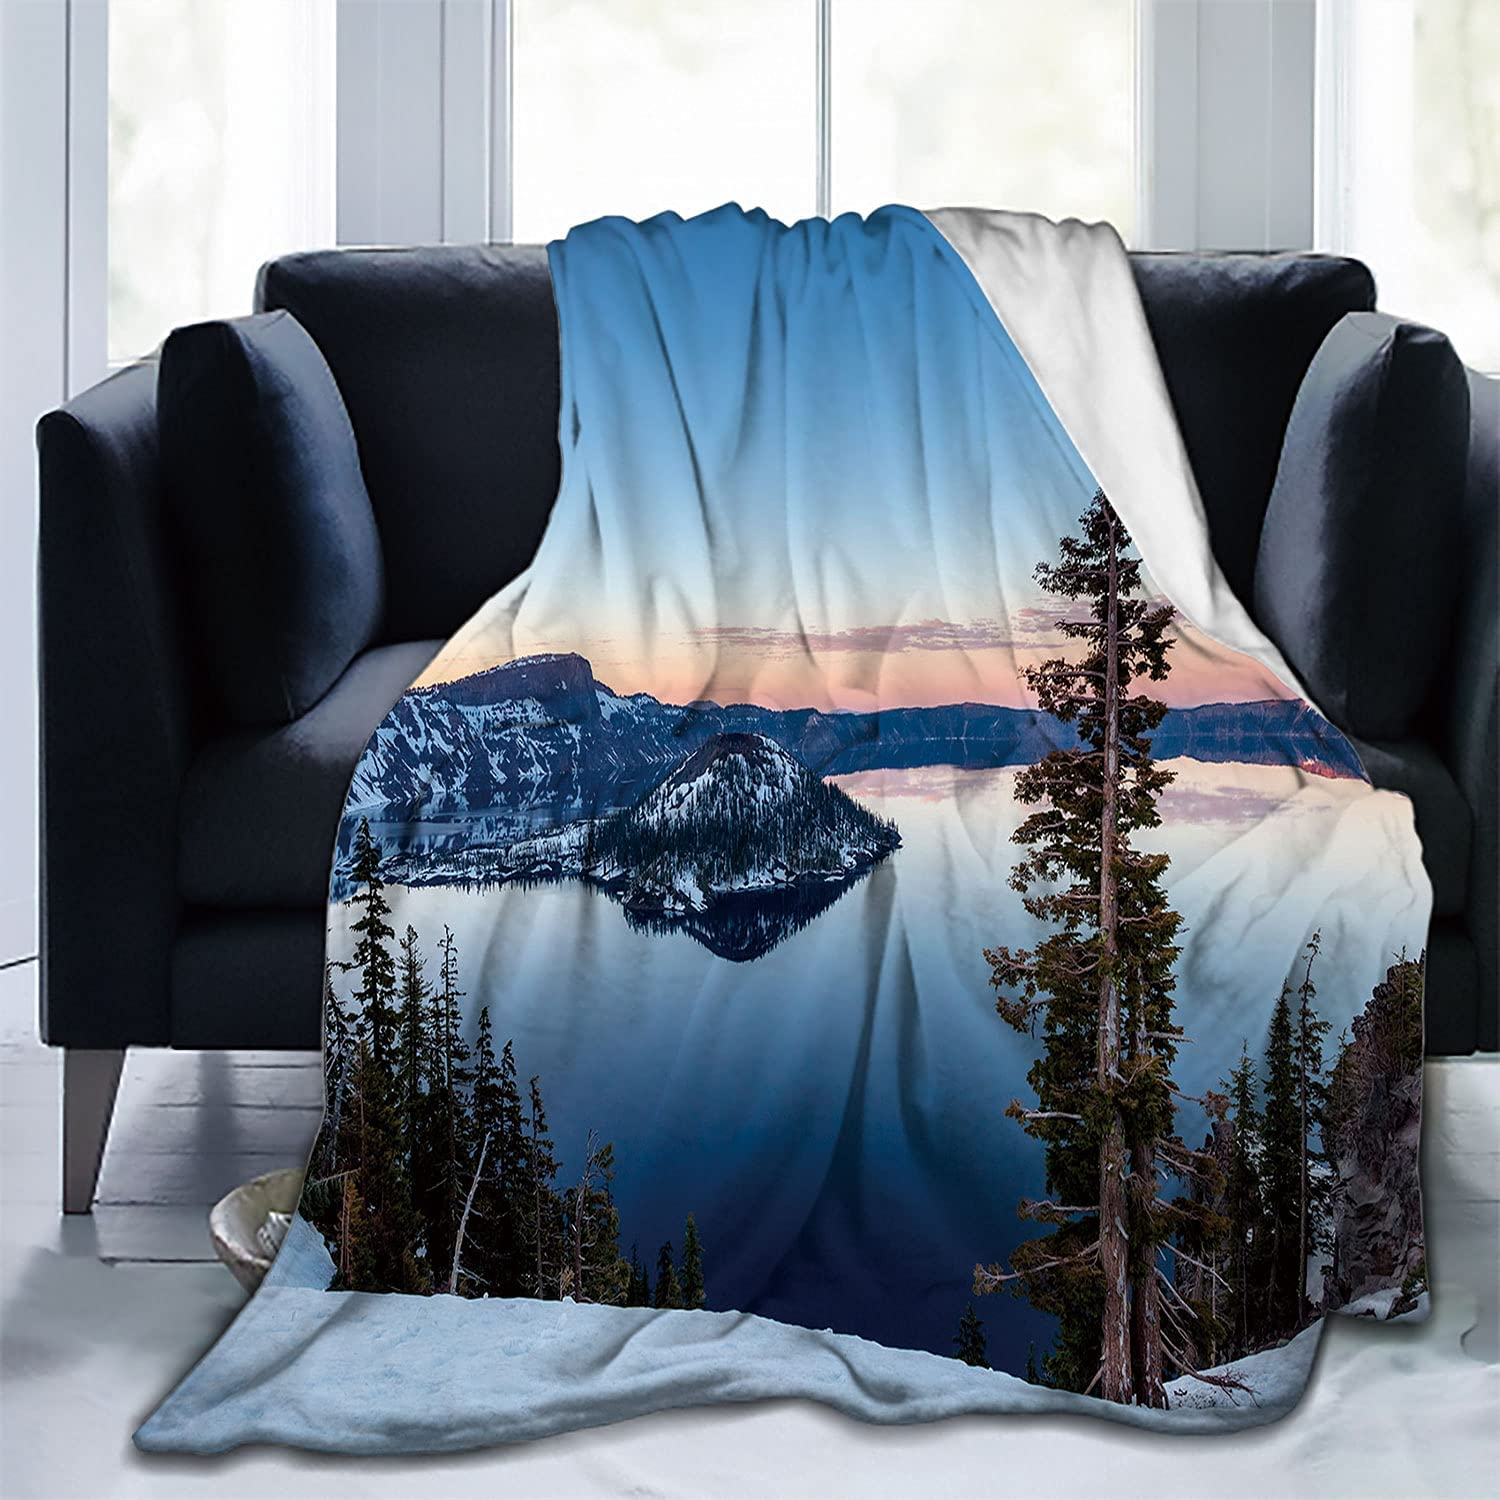 Nine Washington Mall City Crater Lake Couch Blanket Warm Out Blankets for Oregon Deluxe